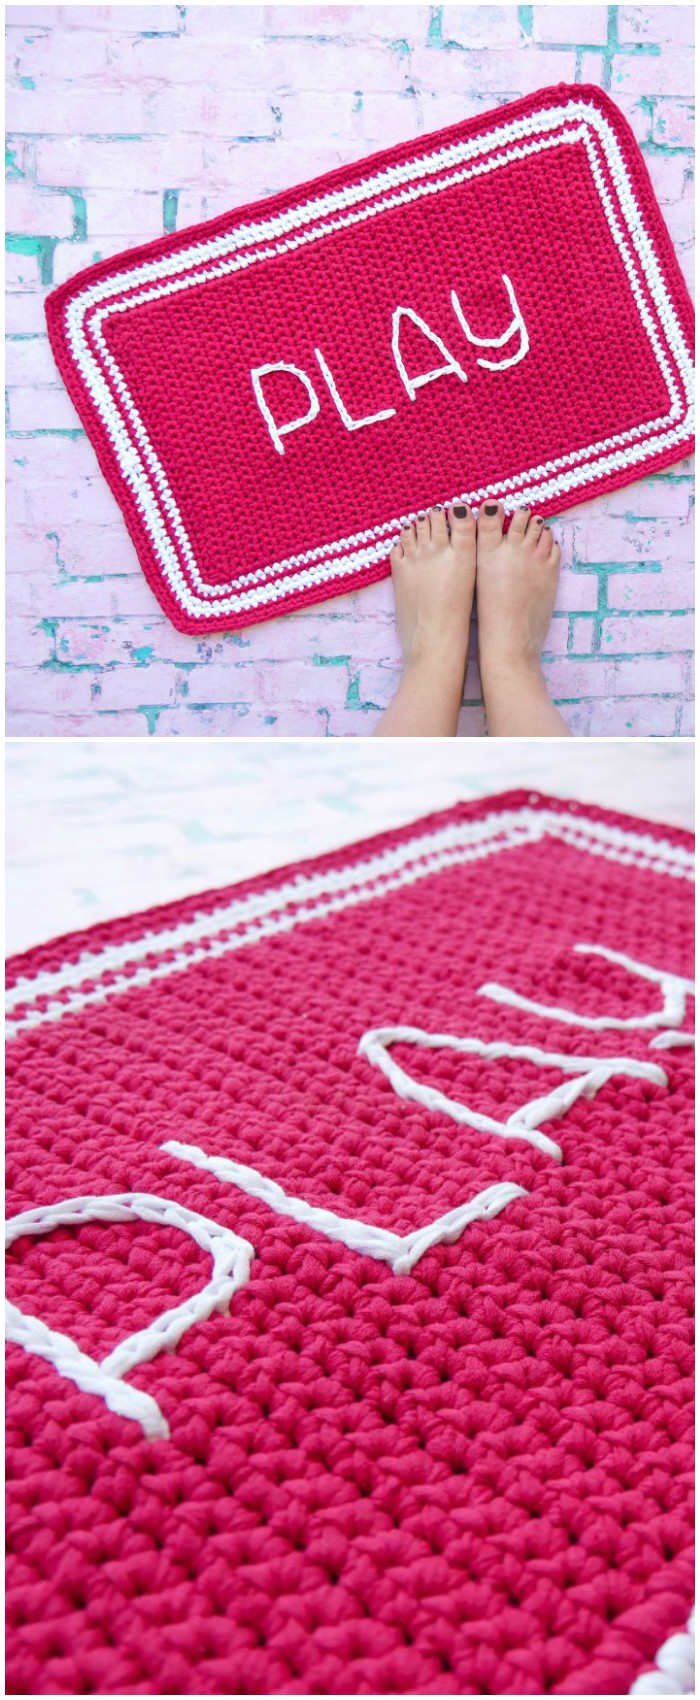 Crochet Outdoor Rug Free Crochet Pattern From Home To Accessories